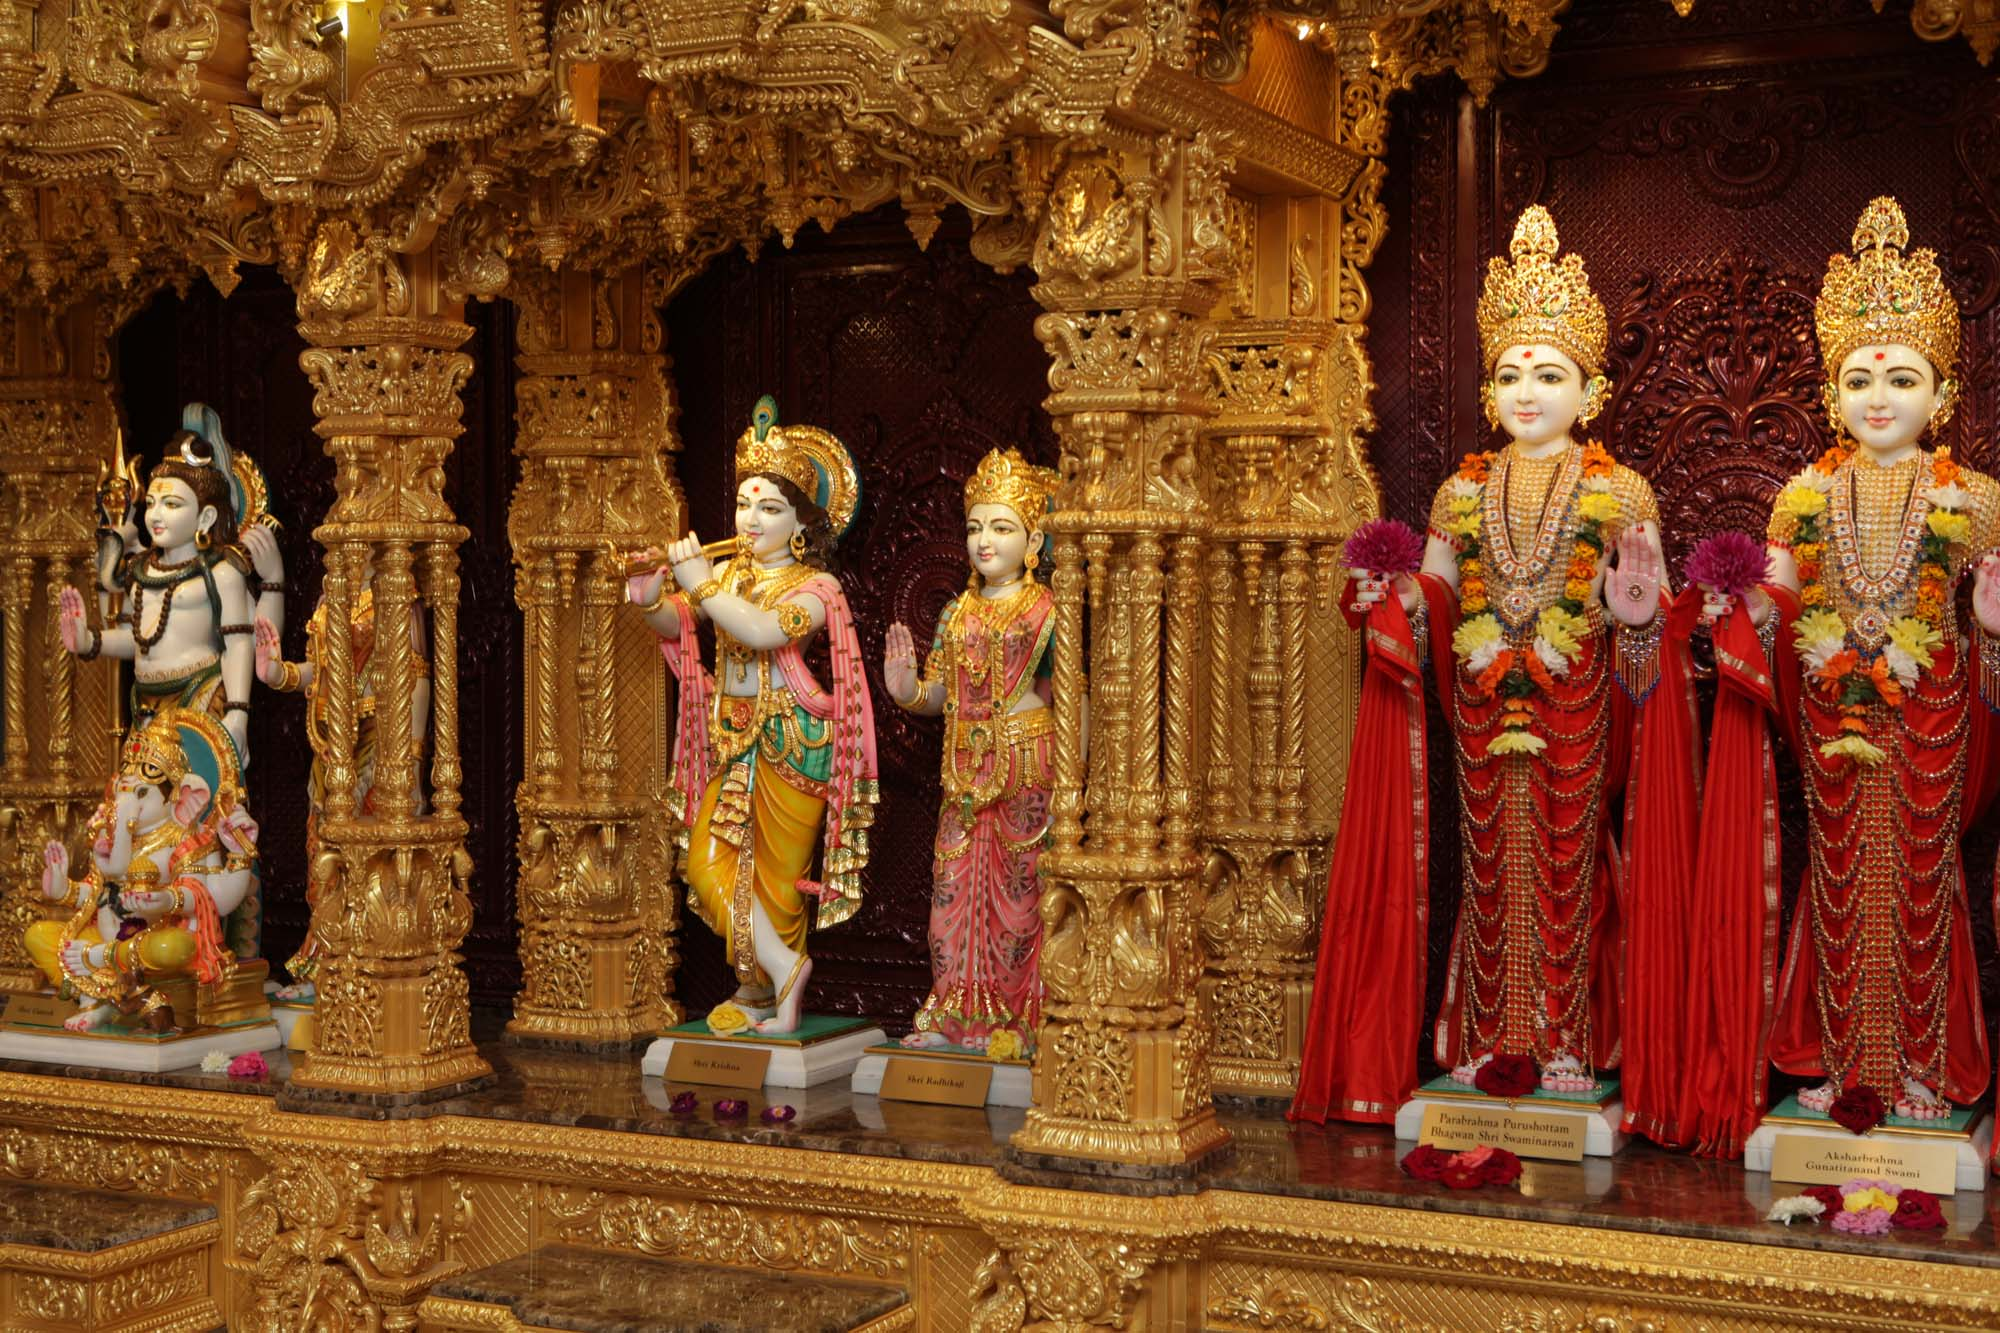 Inside the mandir - BAPS Mandir